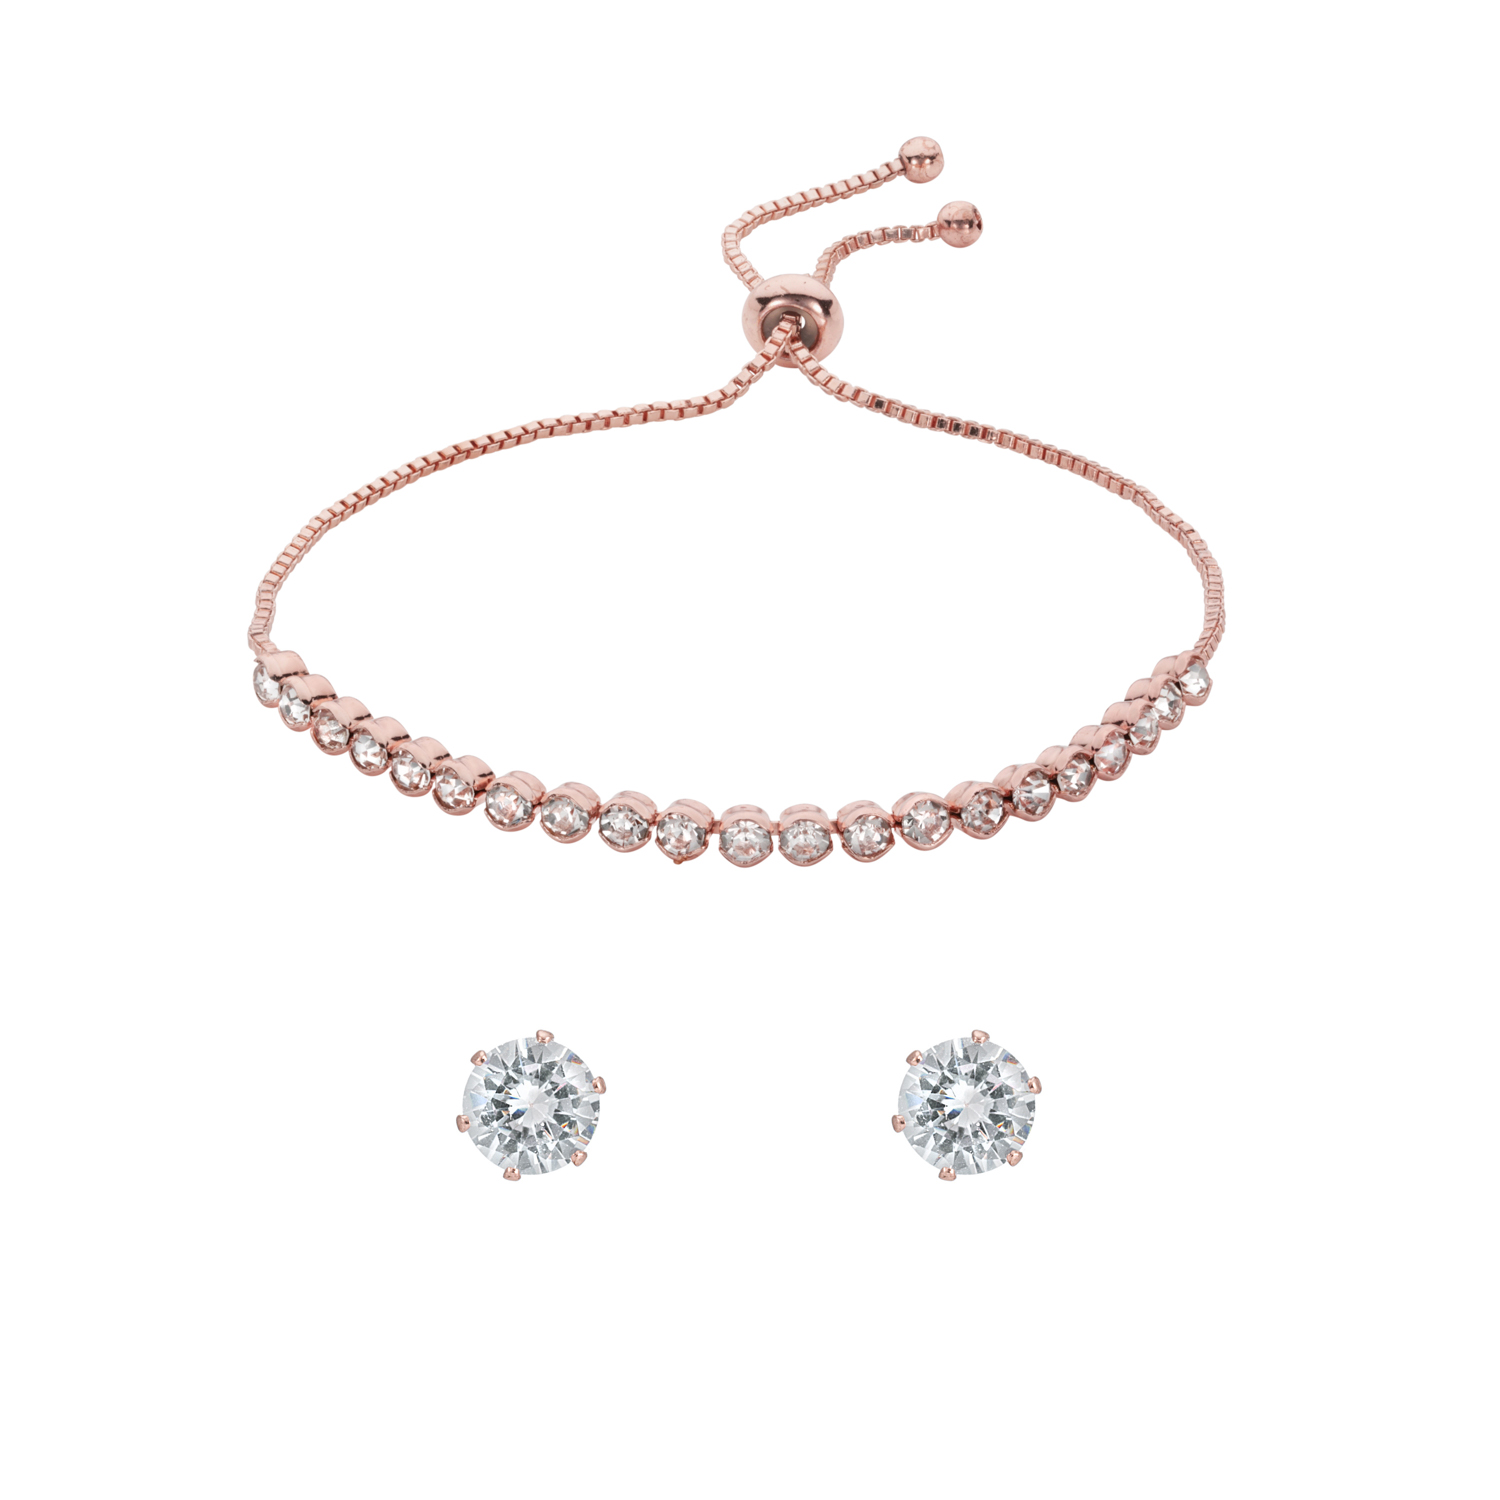 ROSE GOLD Capella Crystal Toggle Bracelet Gift Set